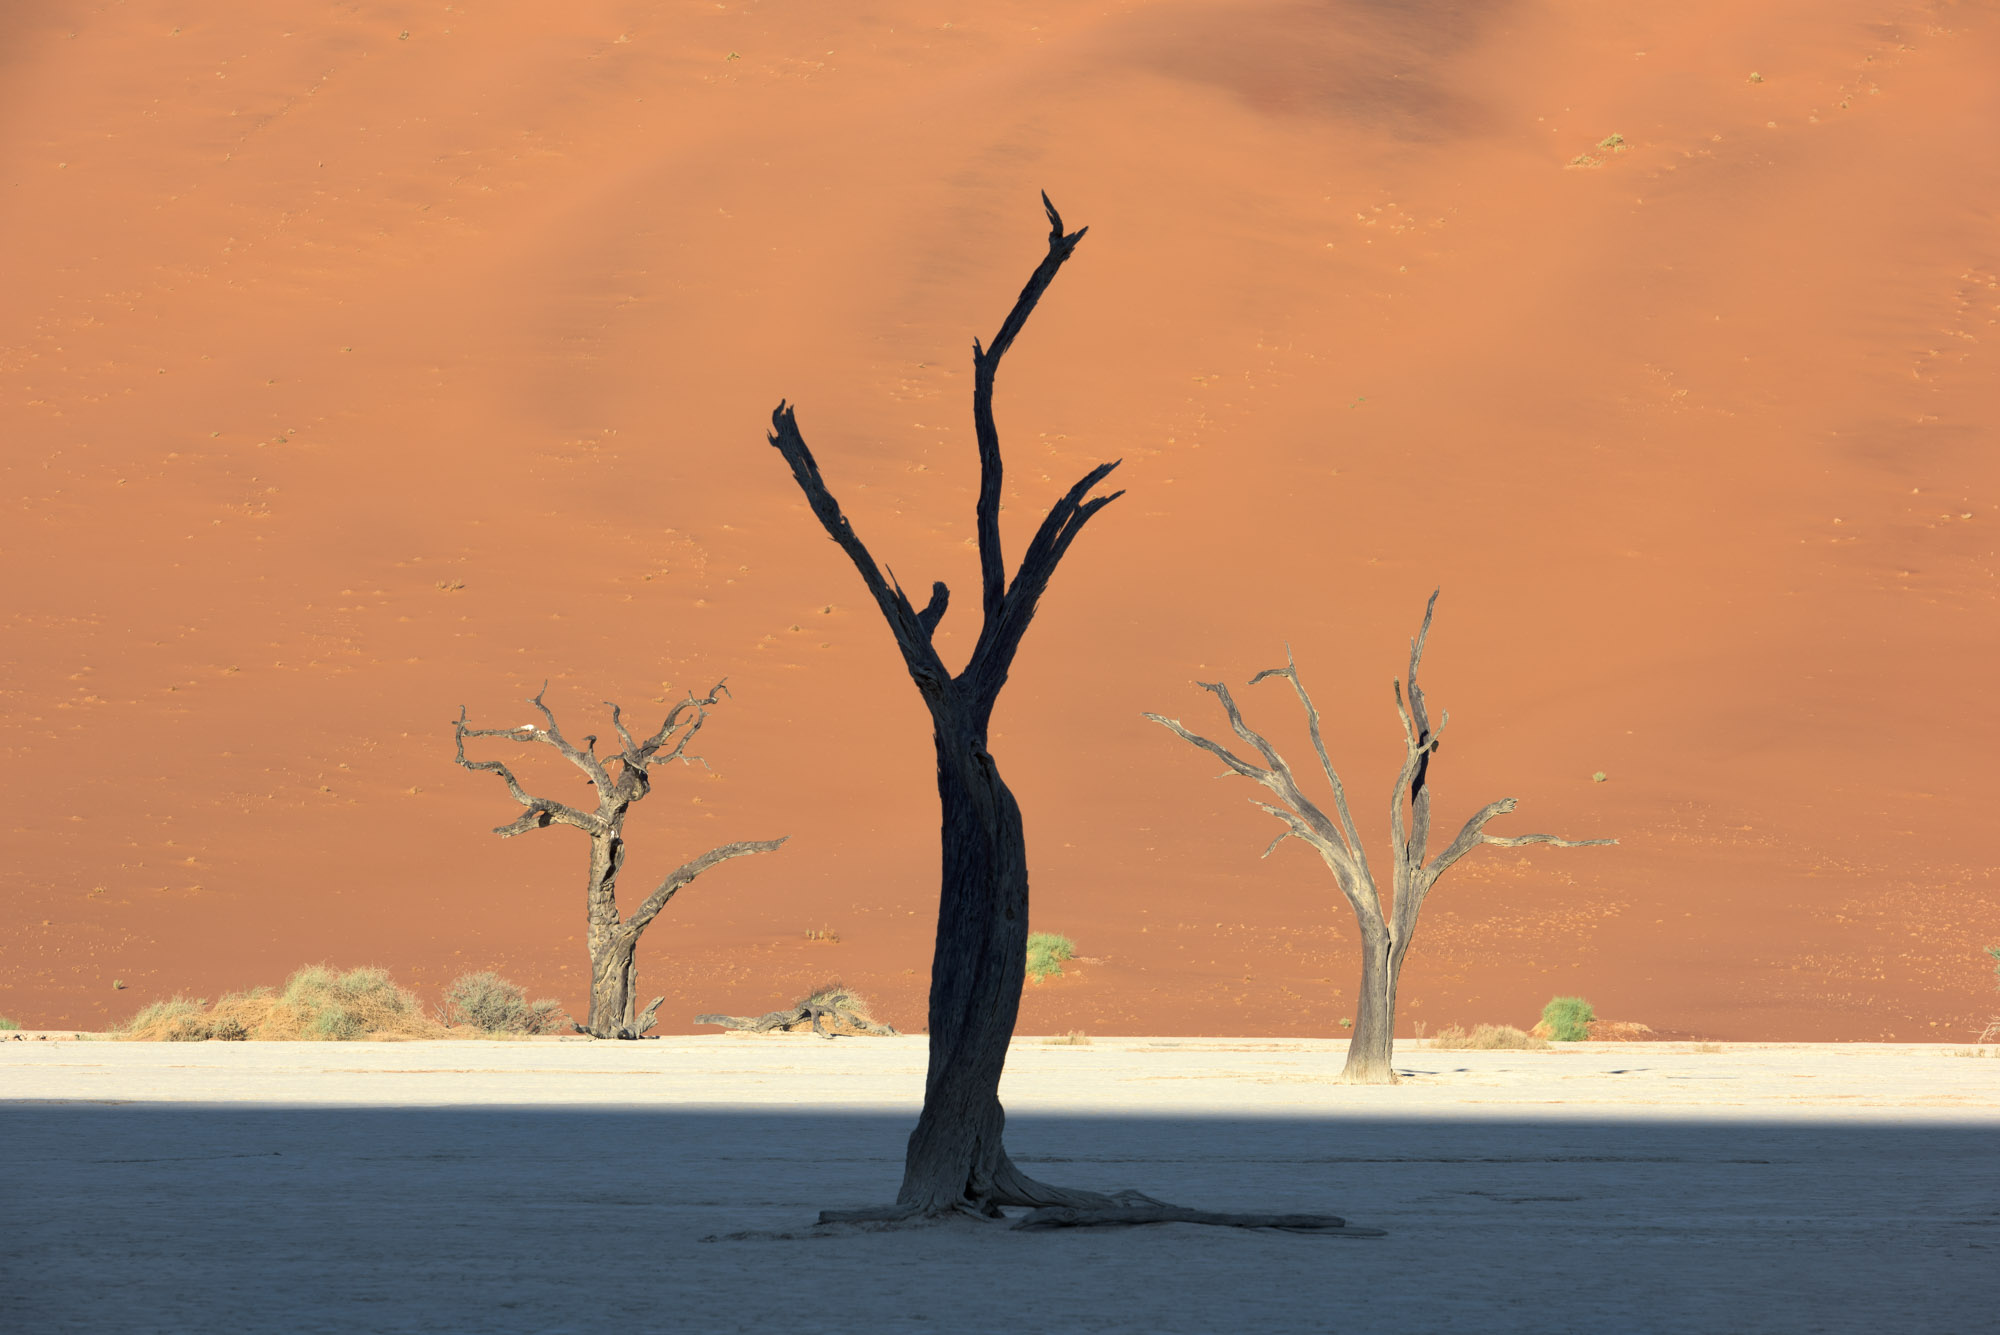 Dead Acacia Trees and Red Dune, Deadvlei, Sussusvlei, Namibia